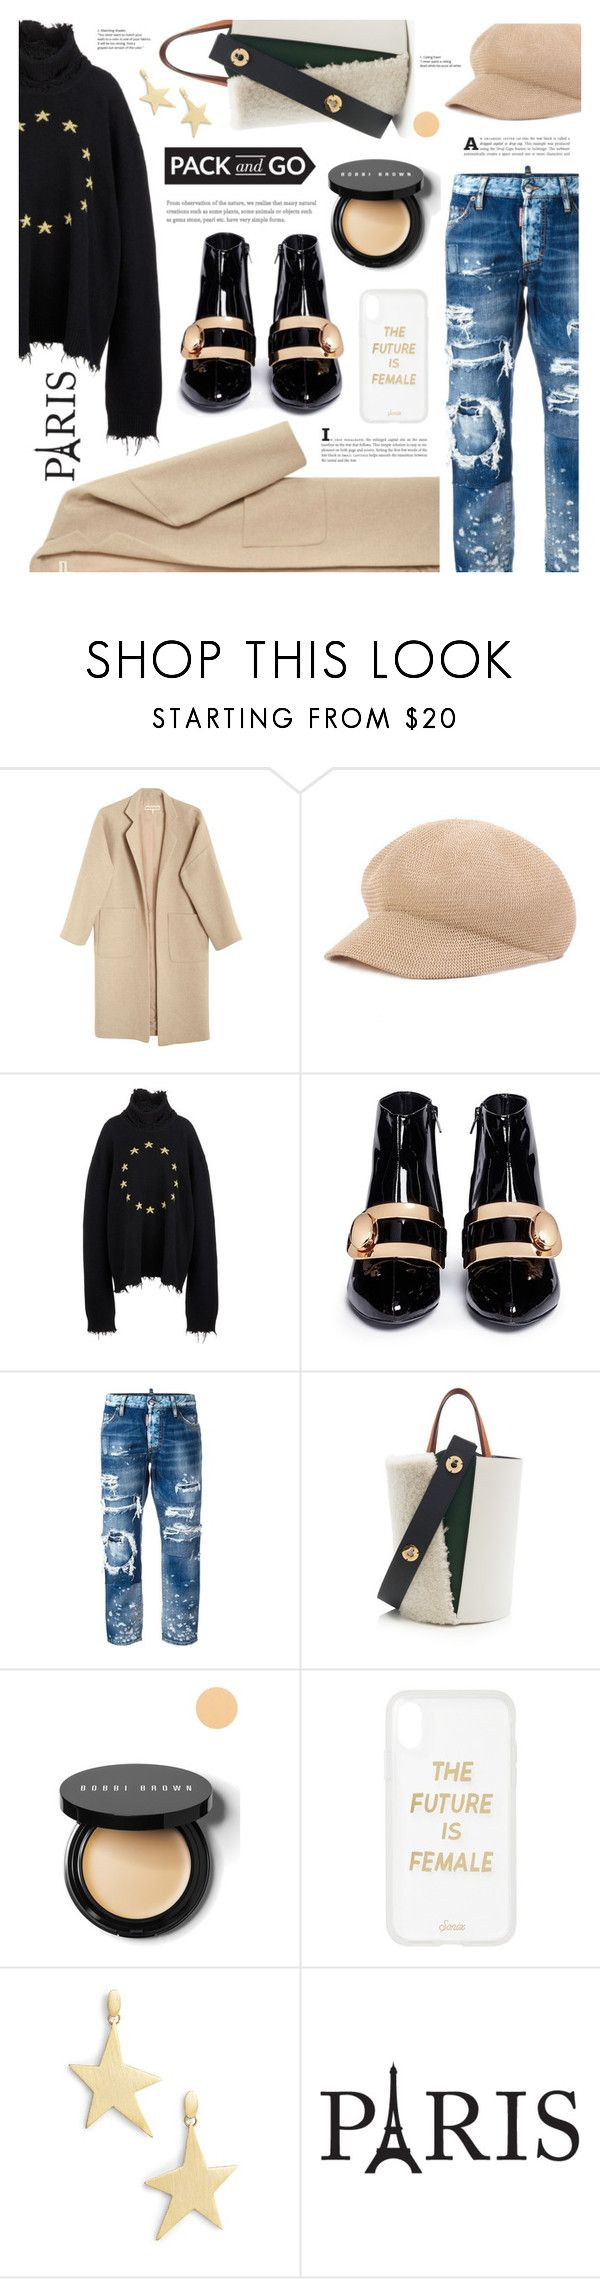 """""""Pack and Go: Paris Fashion Week"""" by ames-ym ❤ liked on Polyvore featuring Mara Hoffman, Vetements, Stella Luna, Dsquared2, Bobbi Brown Cosmetics, Sonix and Rebecca Minkoff"""